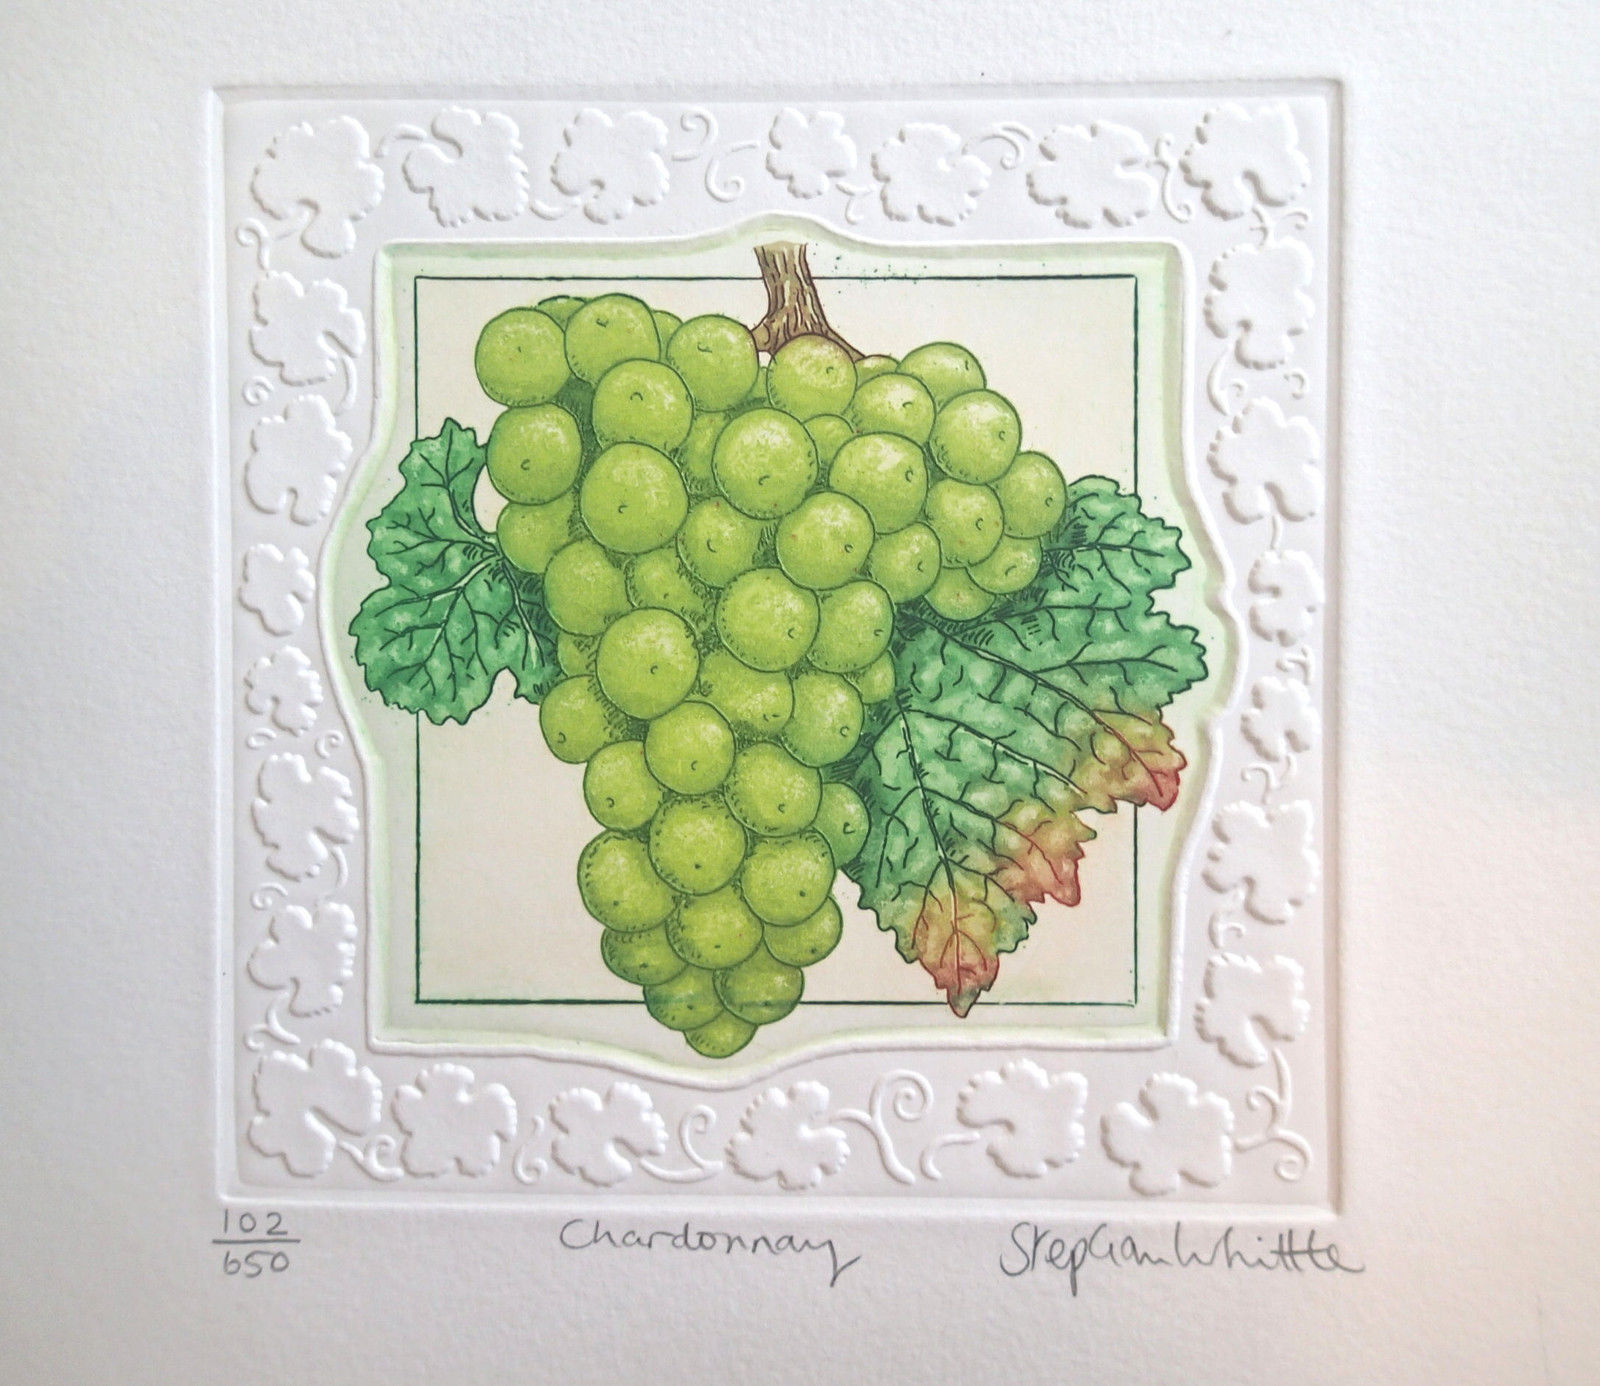 "Stephen Whittle ""Chardonnay "" S/N Etching Embossed Border Grapes on vine LTD"